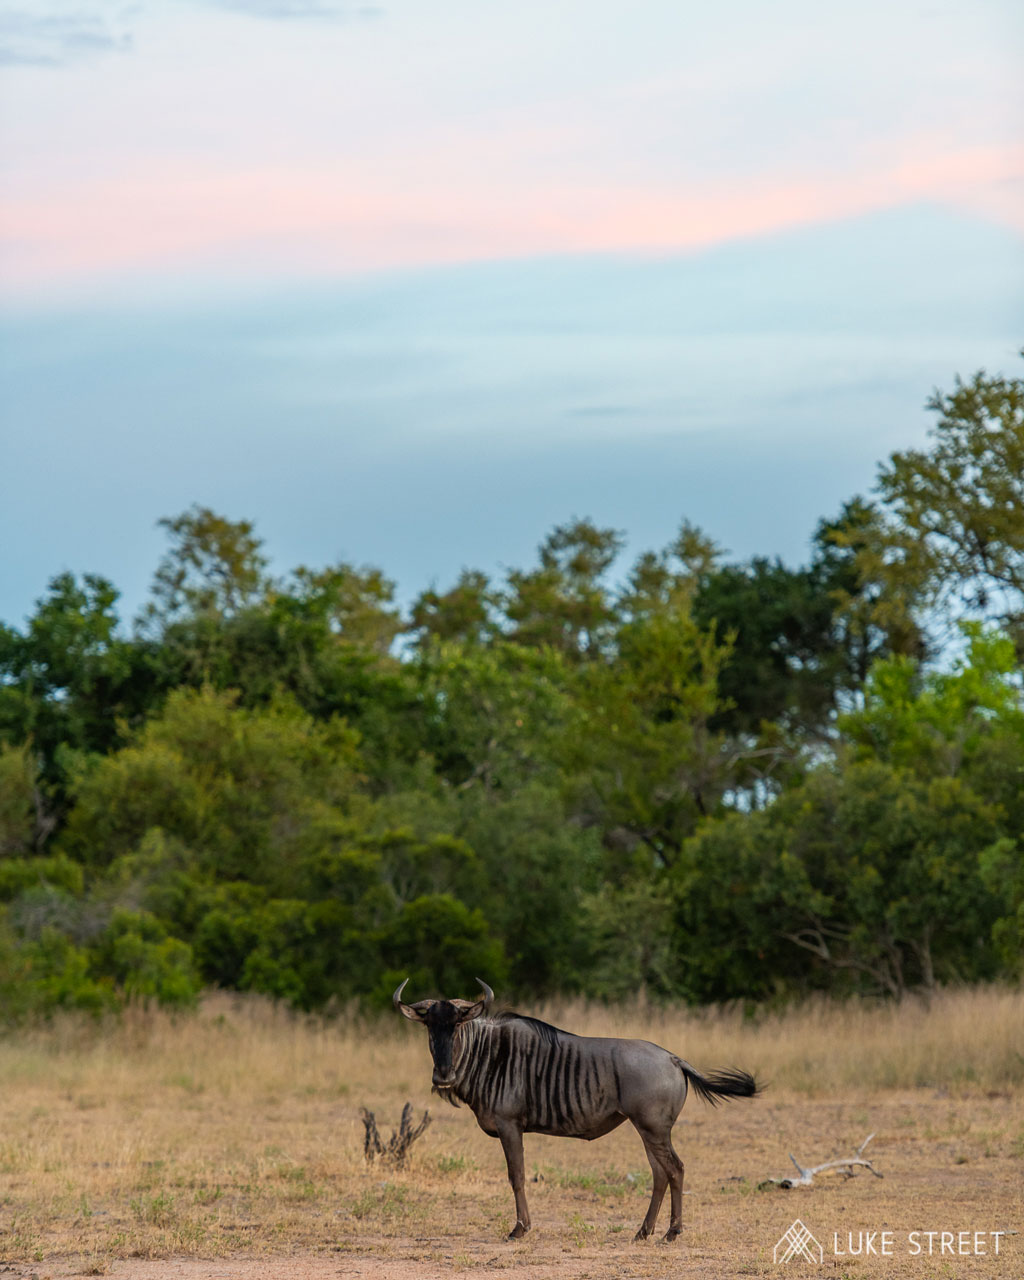 Tanda Tula - majestic wildebeest in the Greater Kruger Park, South Africa